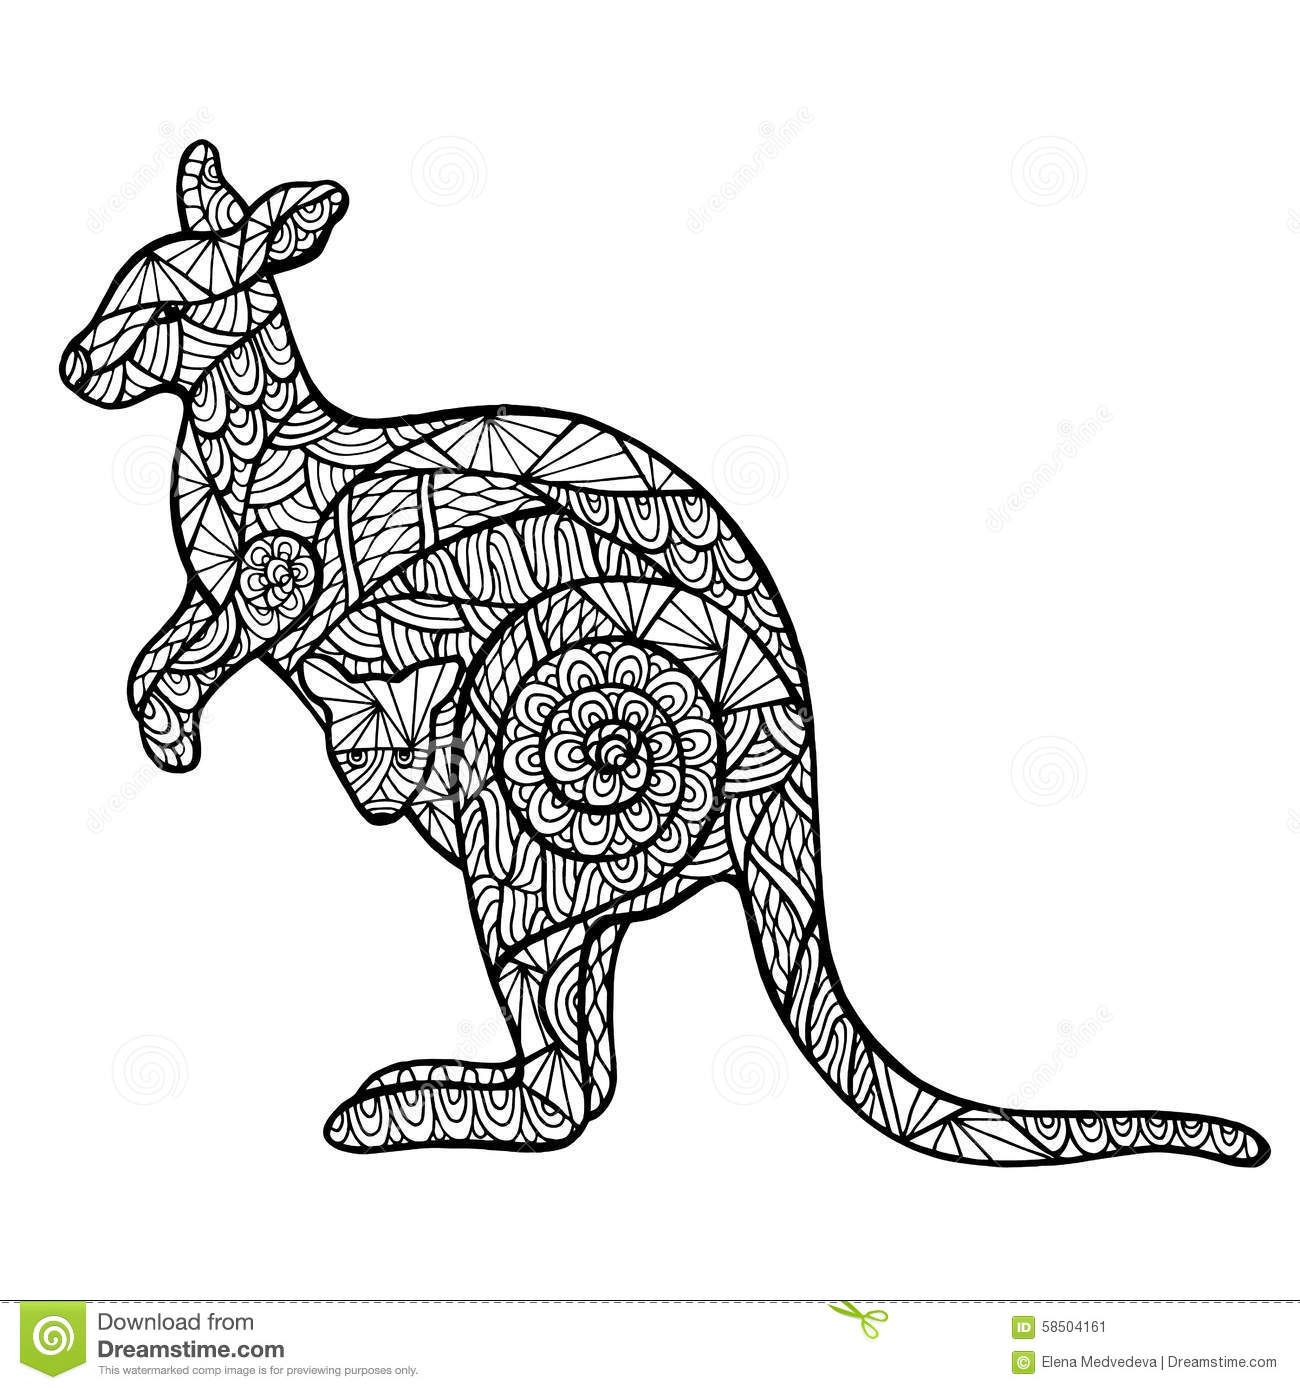 Keptalalat A Kovetkez Re Adult Coloring Kangaroo